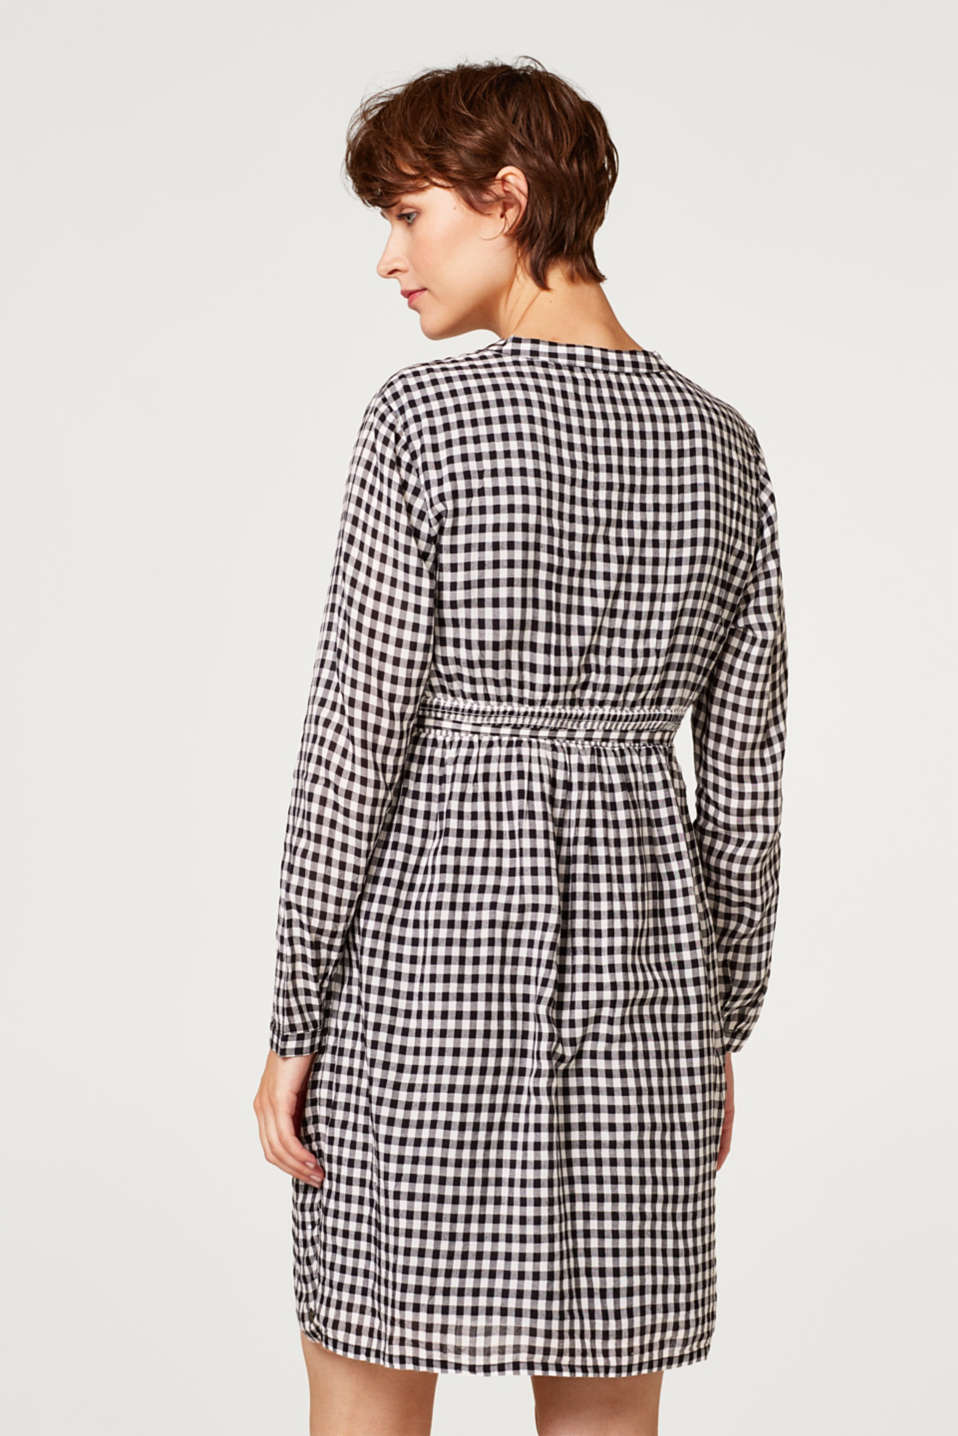 Trendily checked woven dress, LCBLACK, detail image number 3